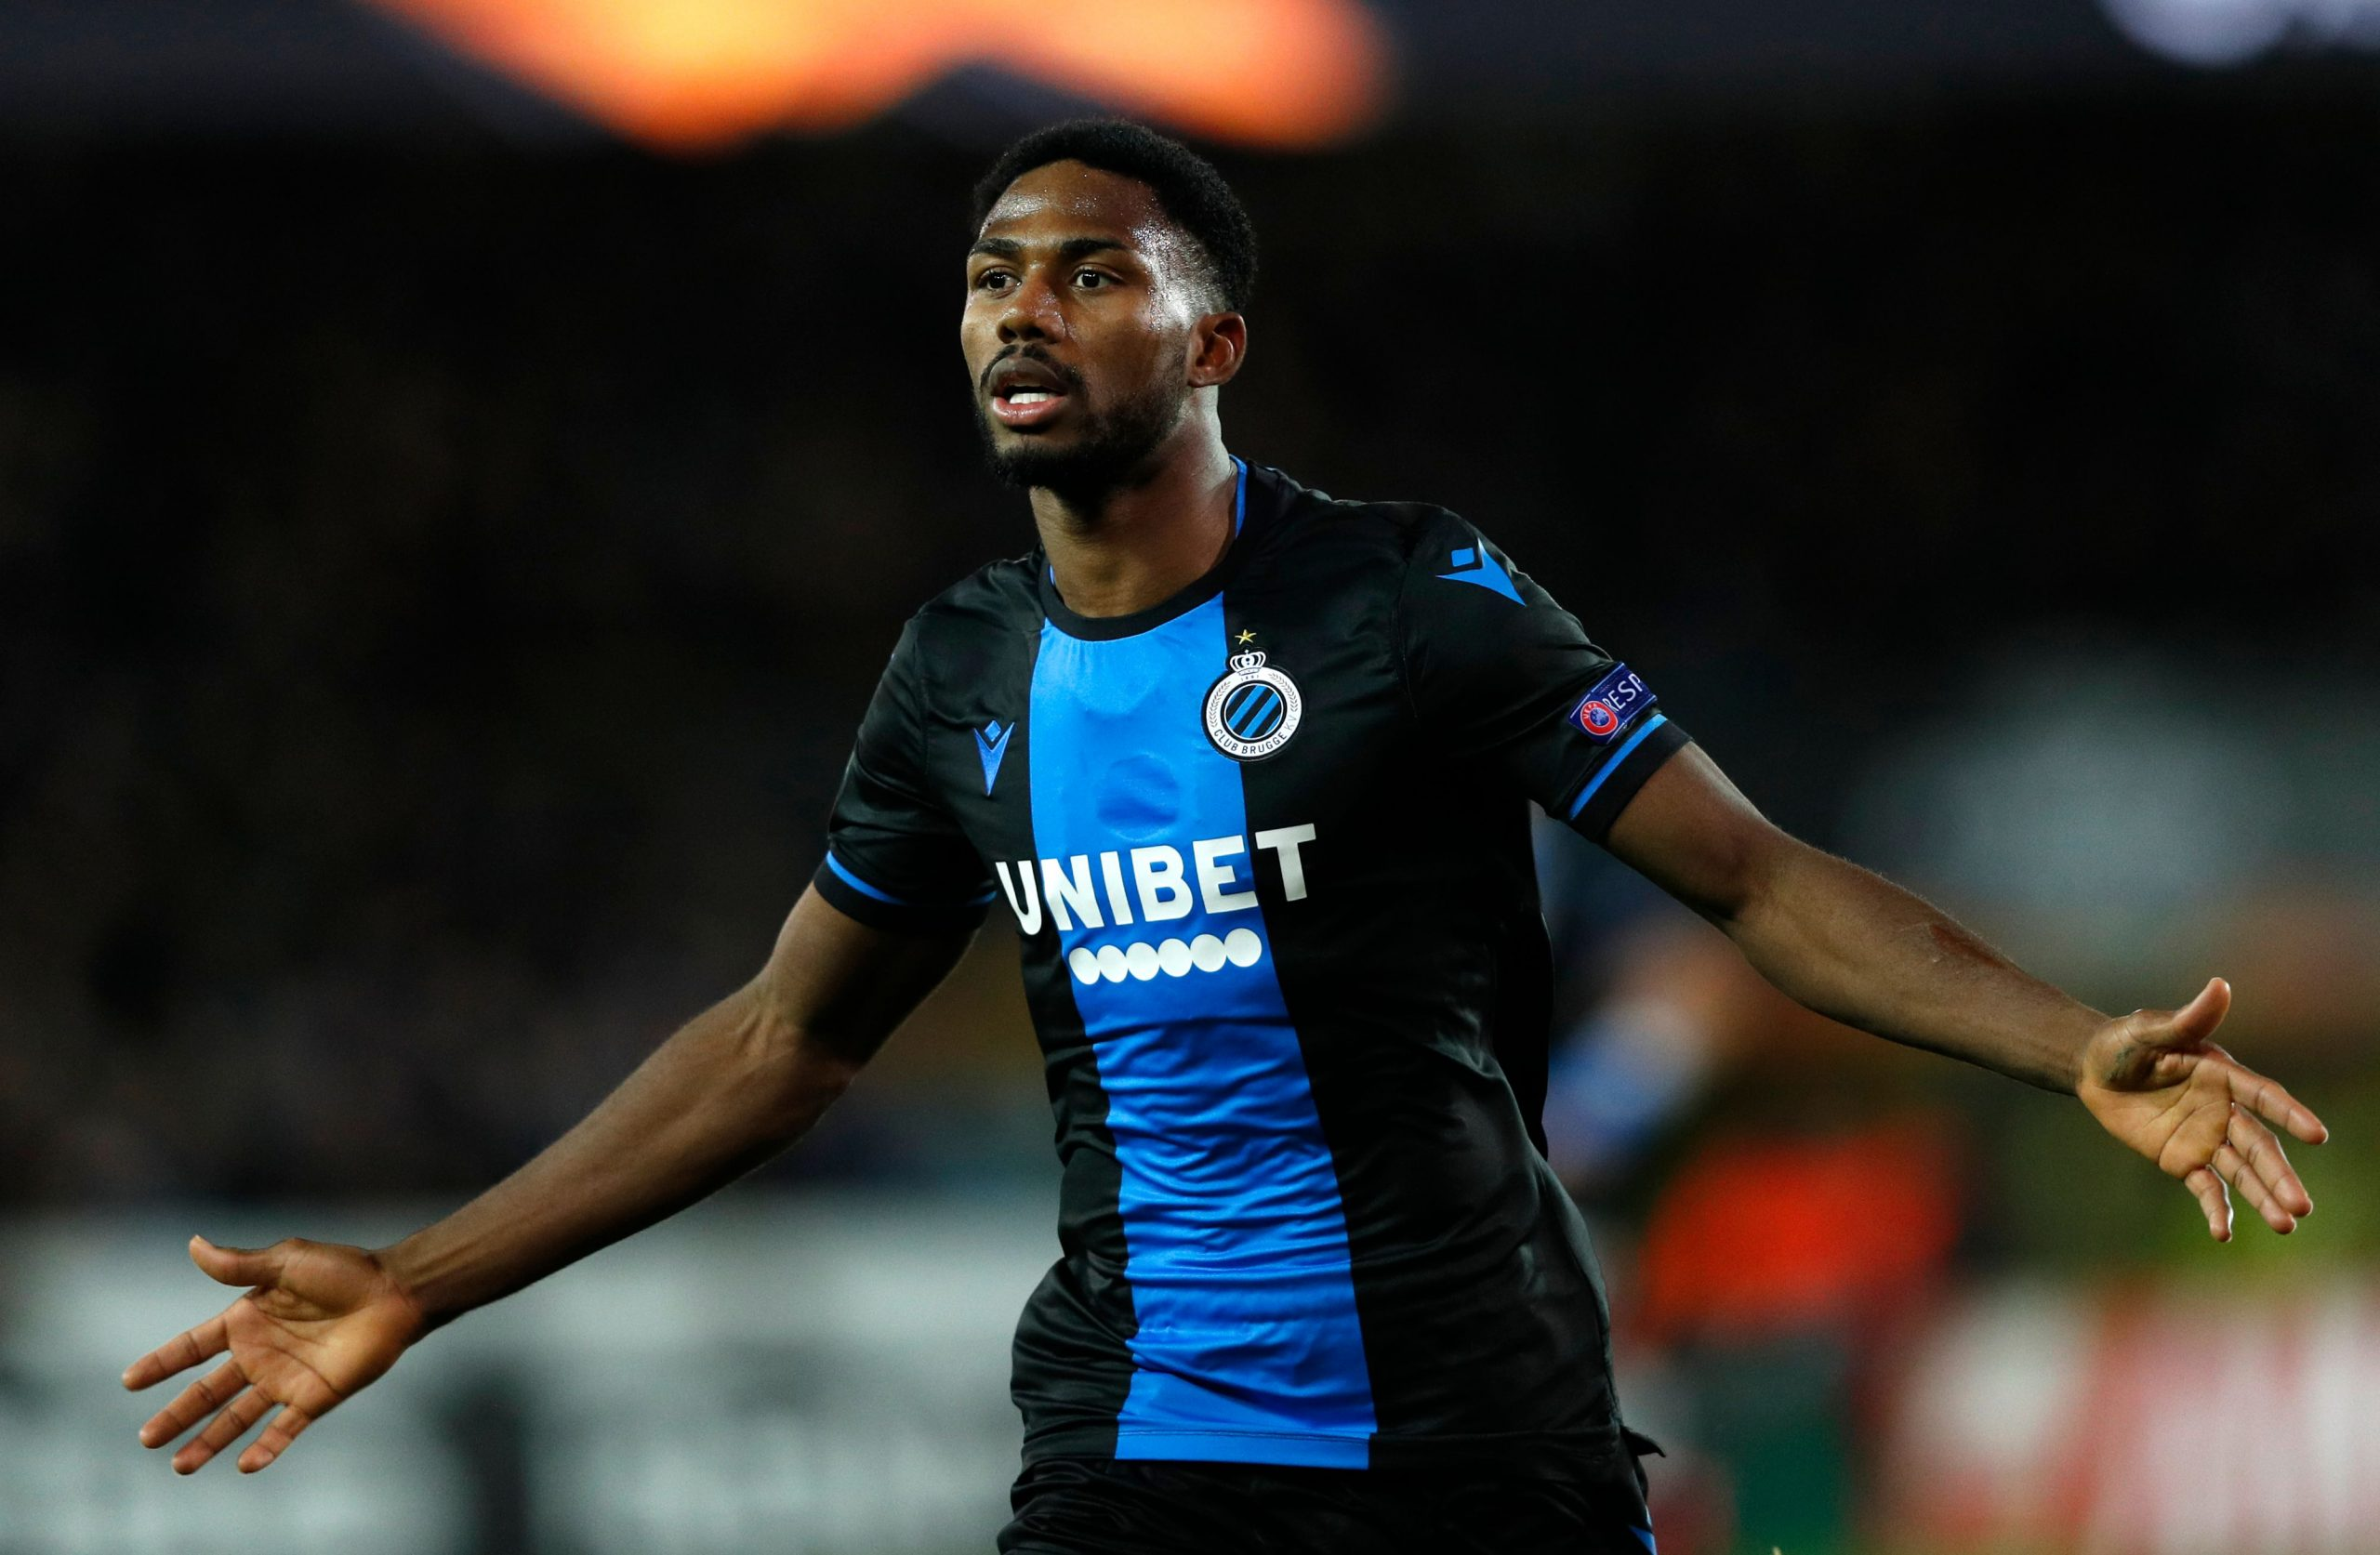 Europa: Dennis Voted Man of The Match In Club Brugge Draw vs Man United